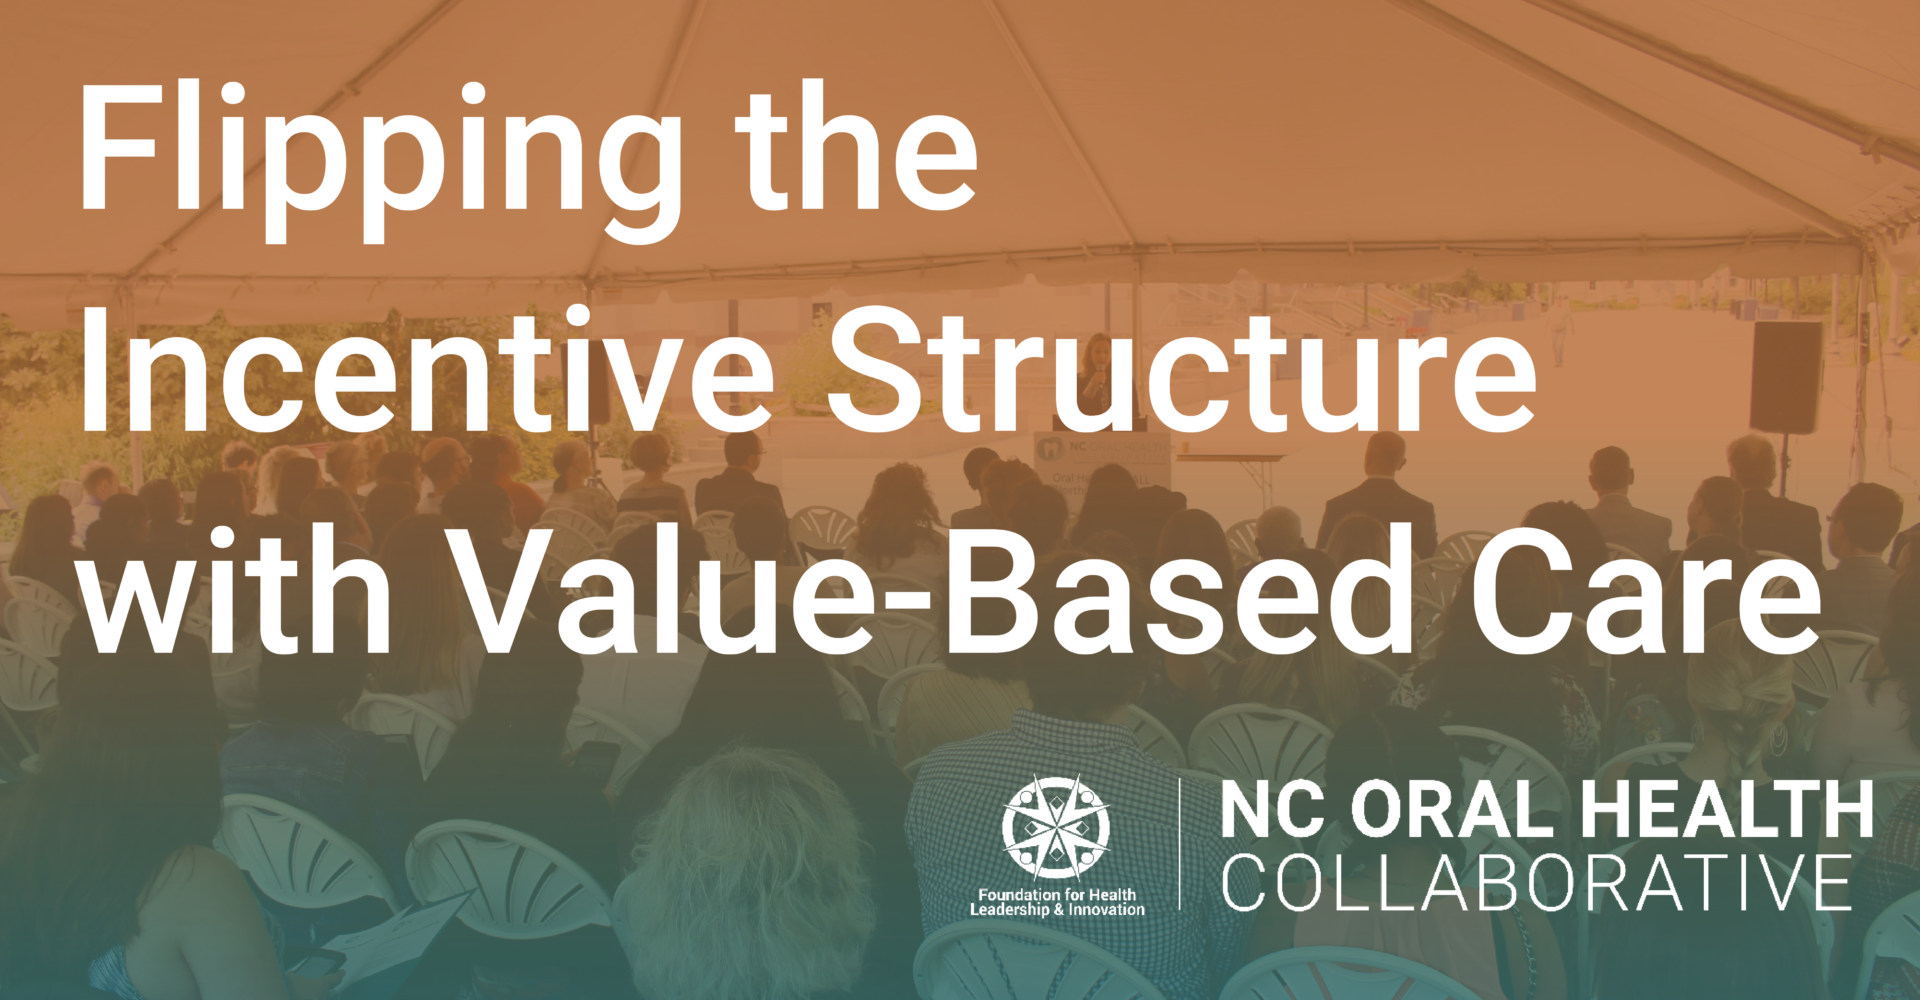 Flipping the Incentive Structure with Value-Based Care